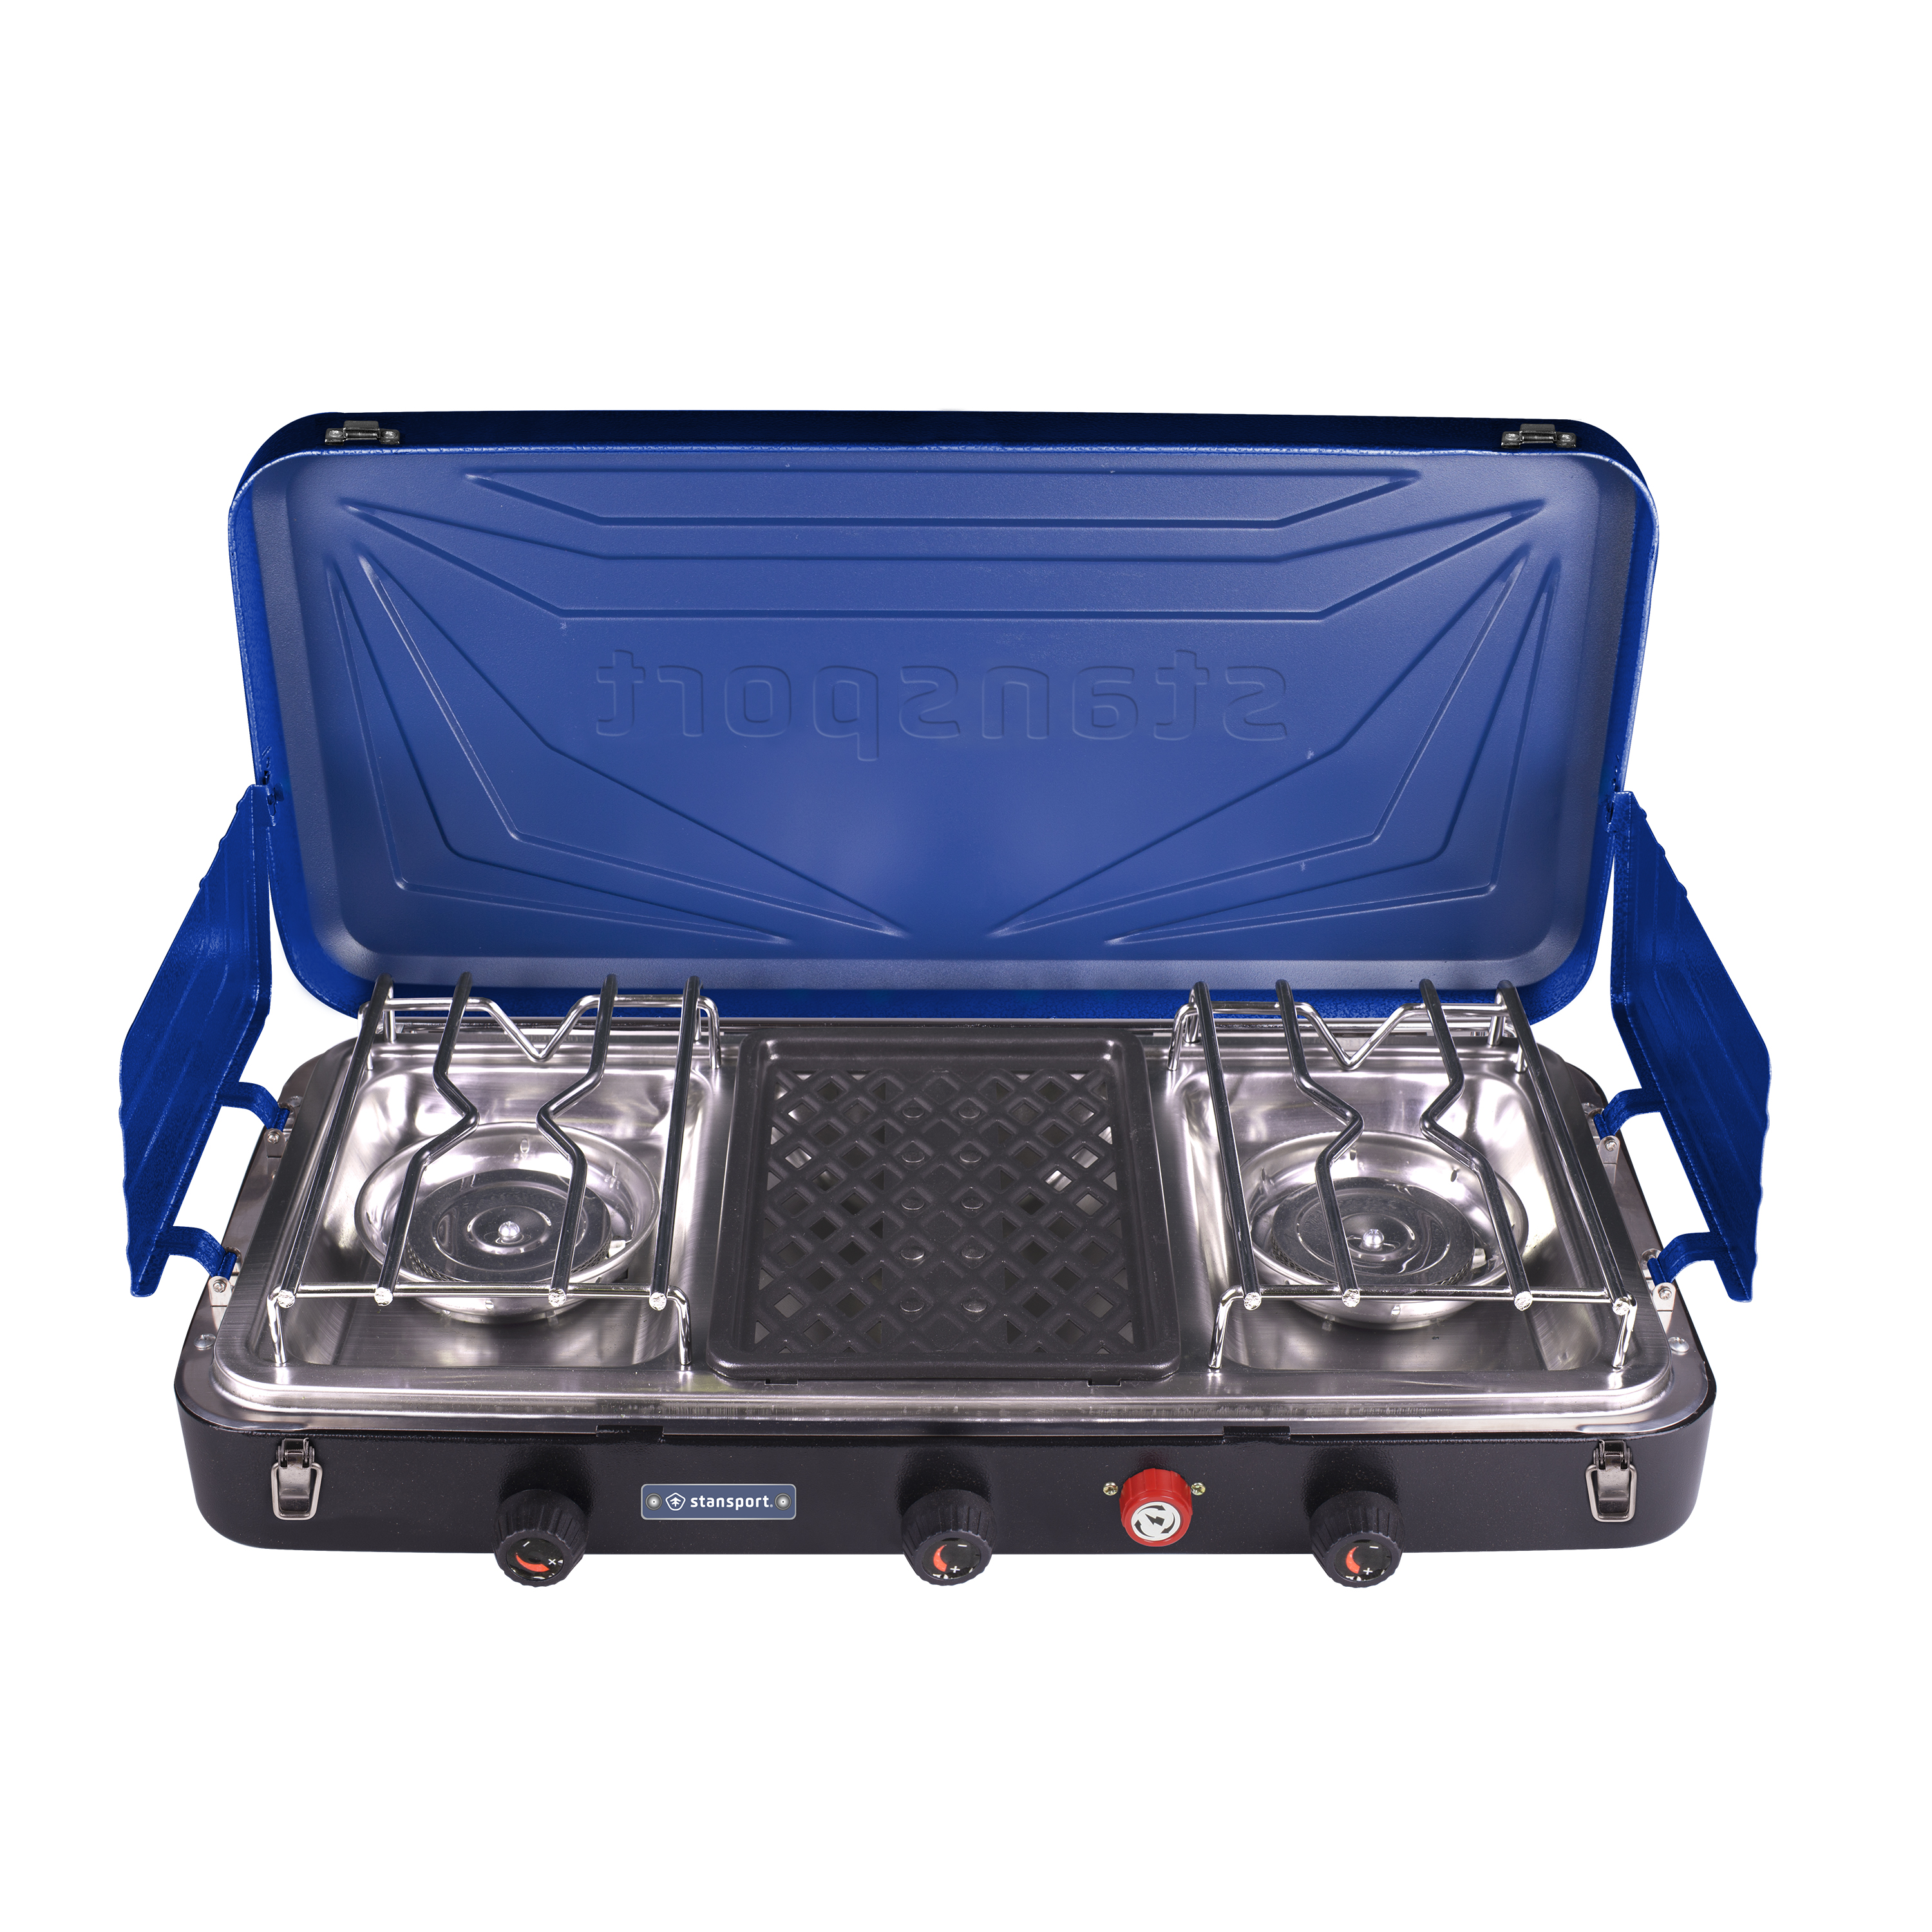 Stansport Outfitter Series Propane Stove 2-25 K & 1-5 K Burners - Blue